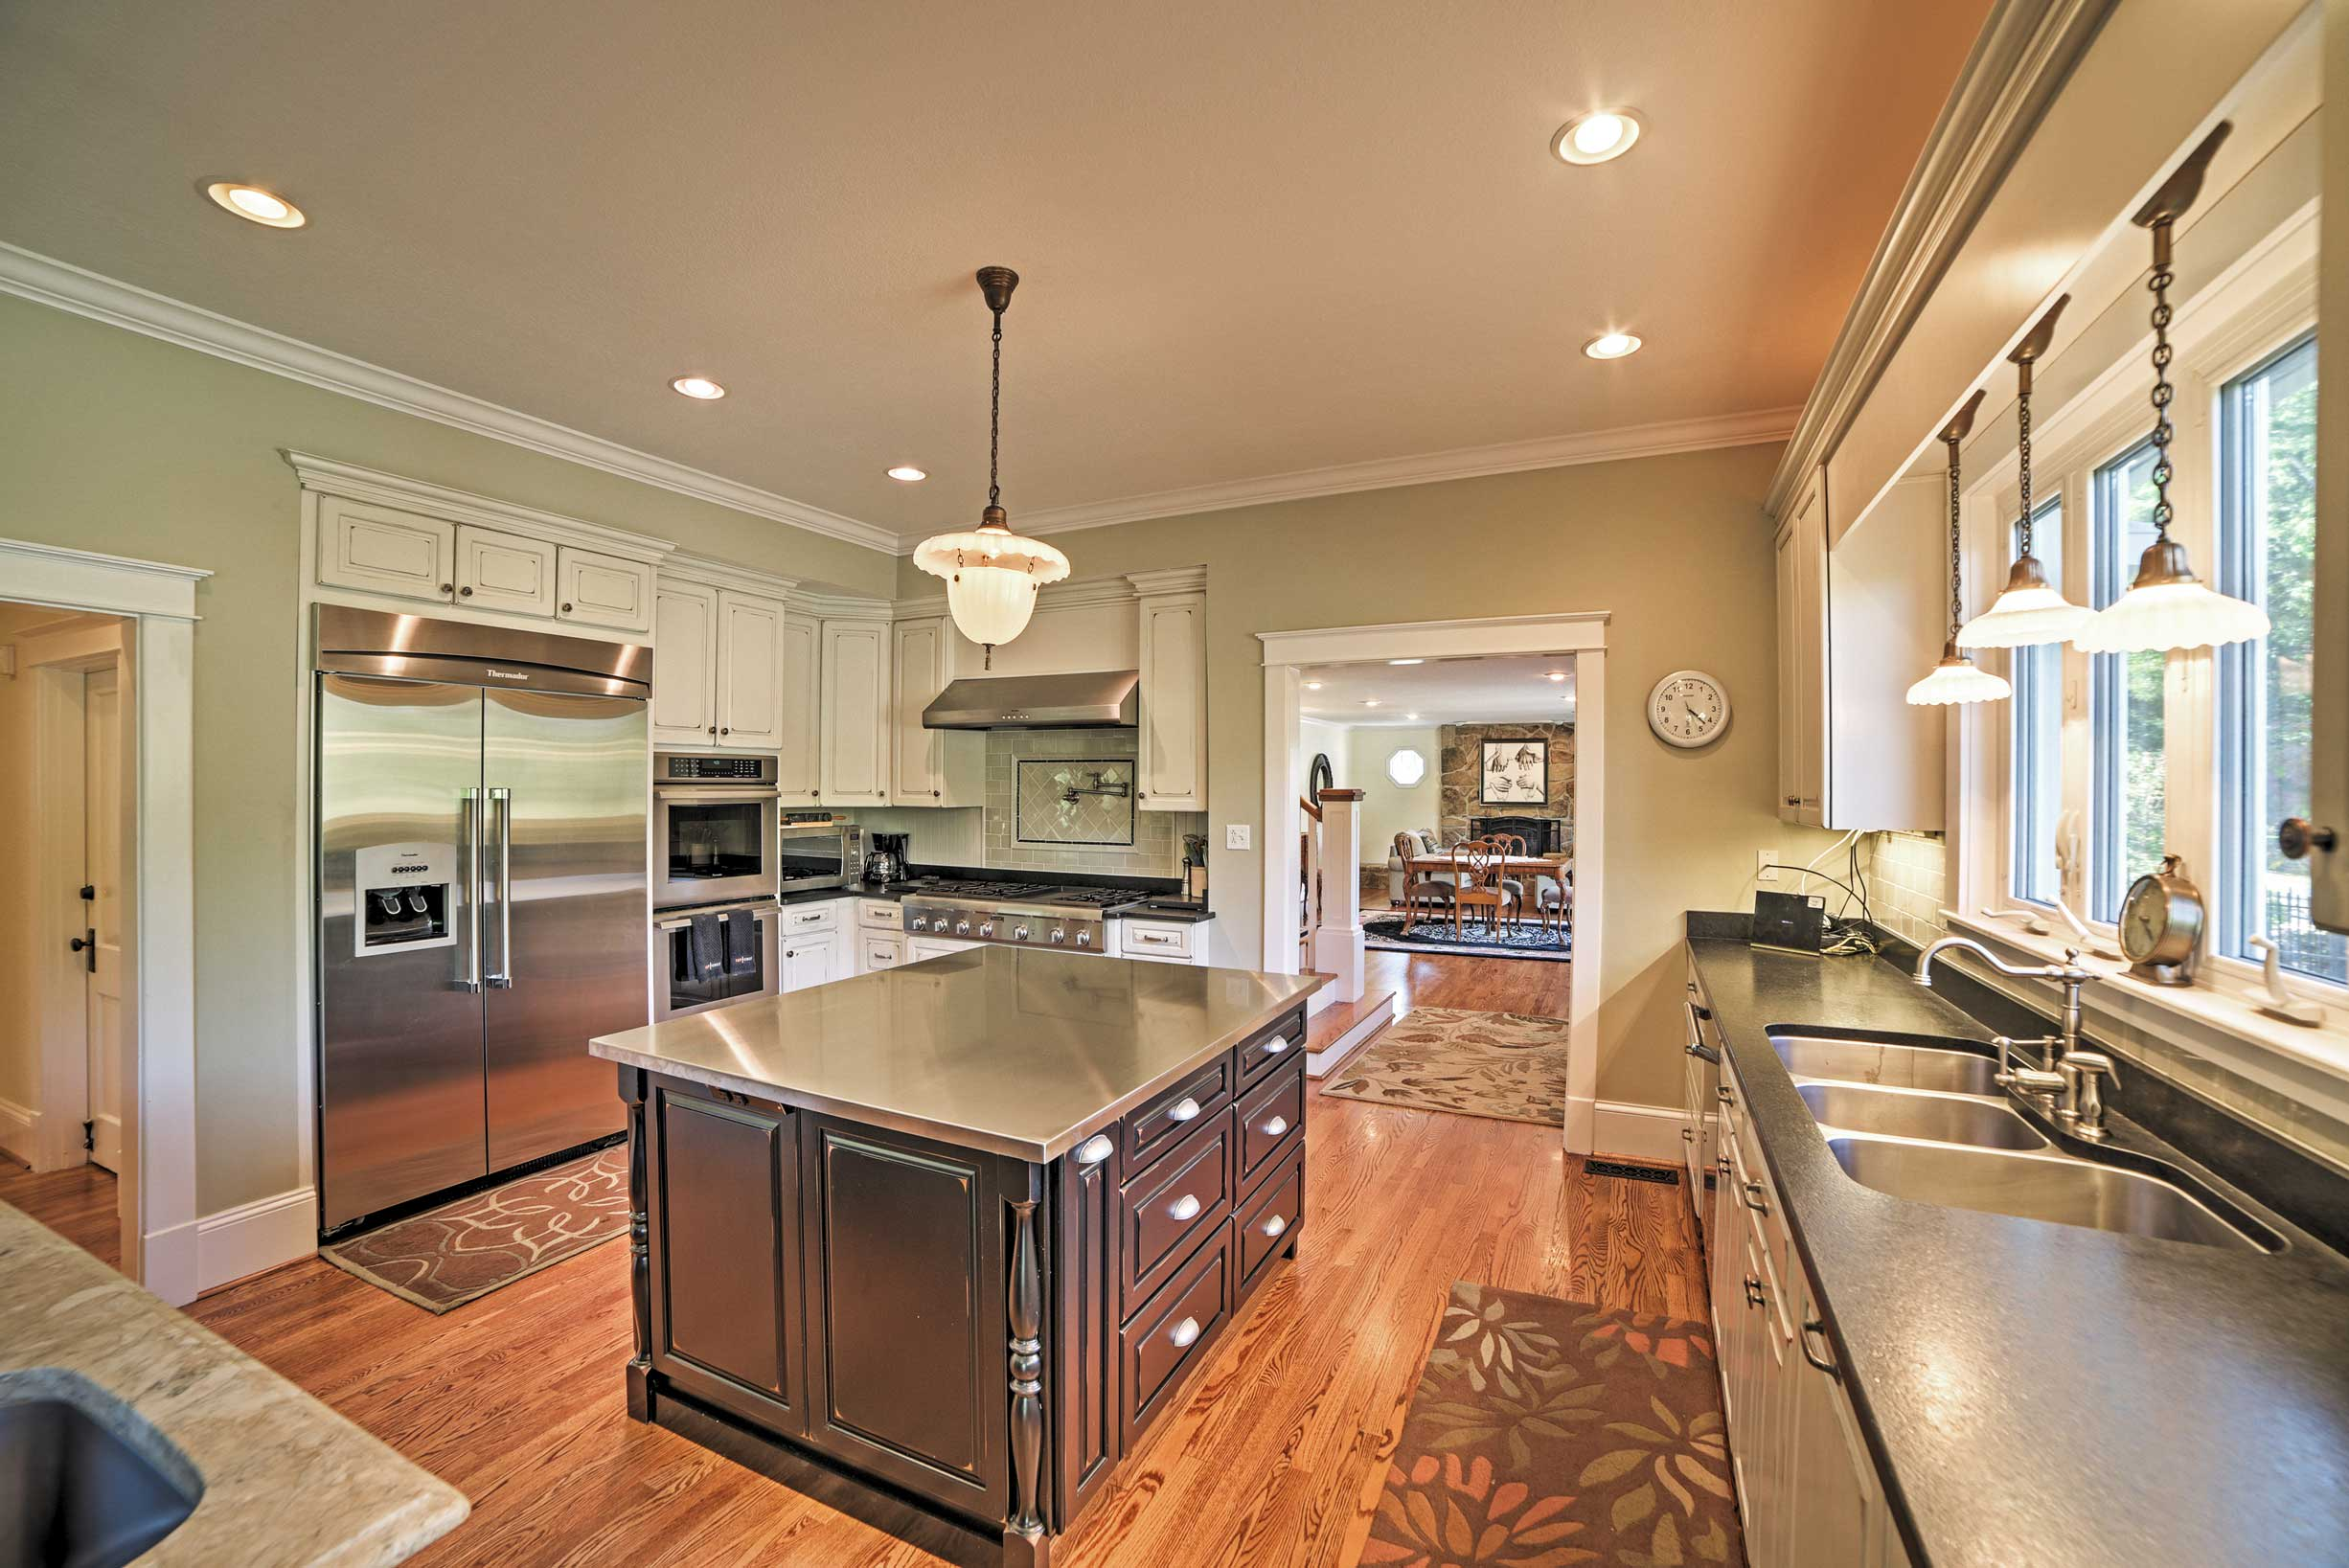 The fully equipped kitchen makes it easy to cook for a crowd.